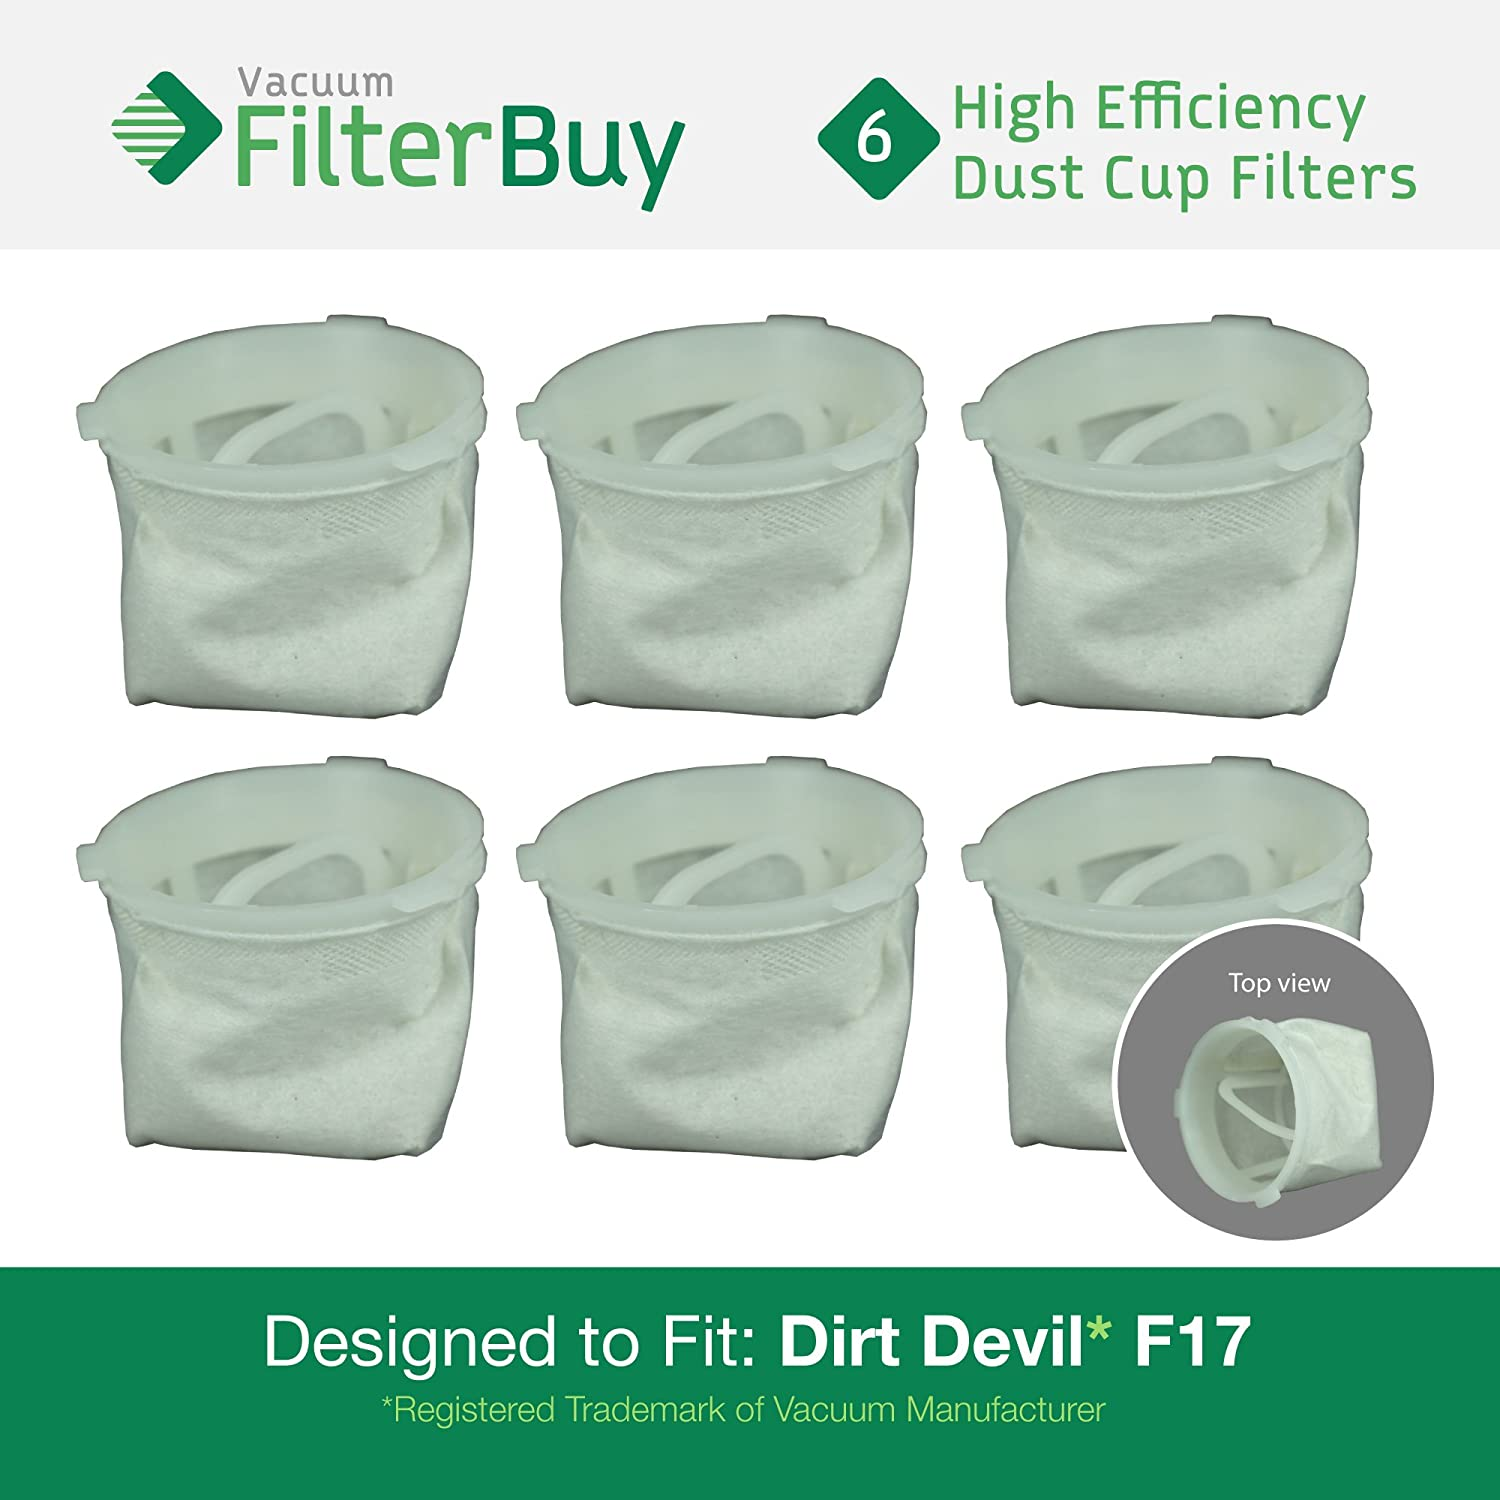 6 - FilterBuy Dirt Devil F-17 (F17) Dust Cup Replacement Filters, Part # 3DN0980000 (3-DN0980-000). Designed by FilterBuy to fit Dirt Devil KONE and Dirt Devil KURV Hand Held Vacuum Cleaners LEPAC7483